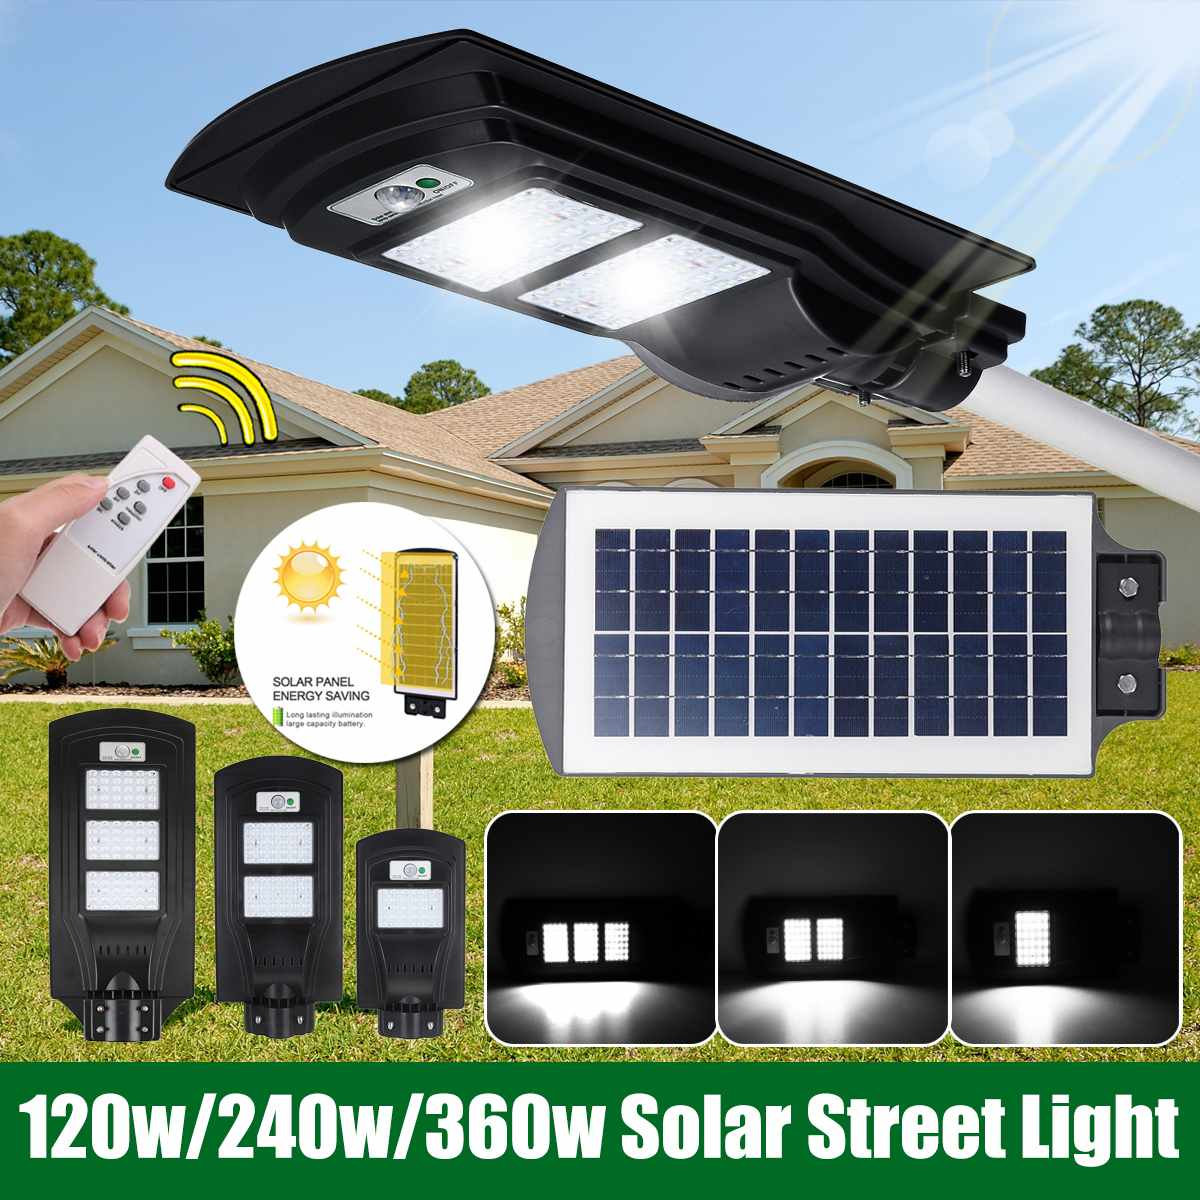 120W/240W/360W Solar Street Light 30/60/90 LED Outdoor Lighting Security Lamp Motion Sensor Waterproof  IP67